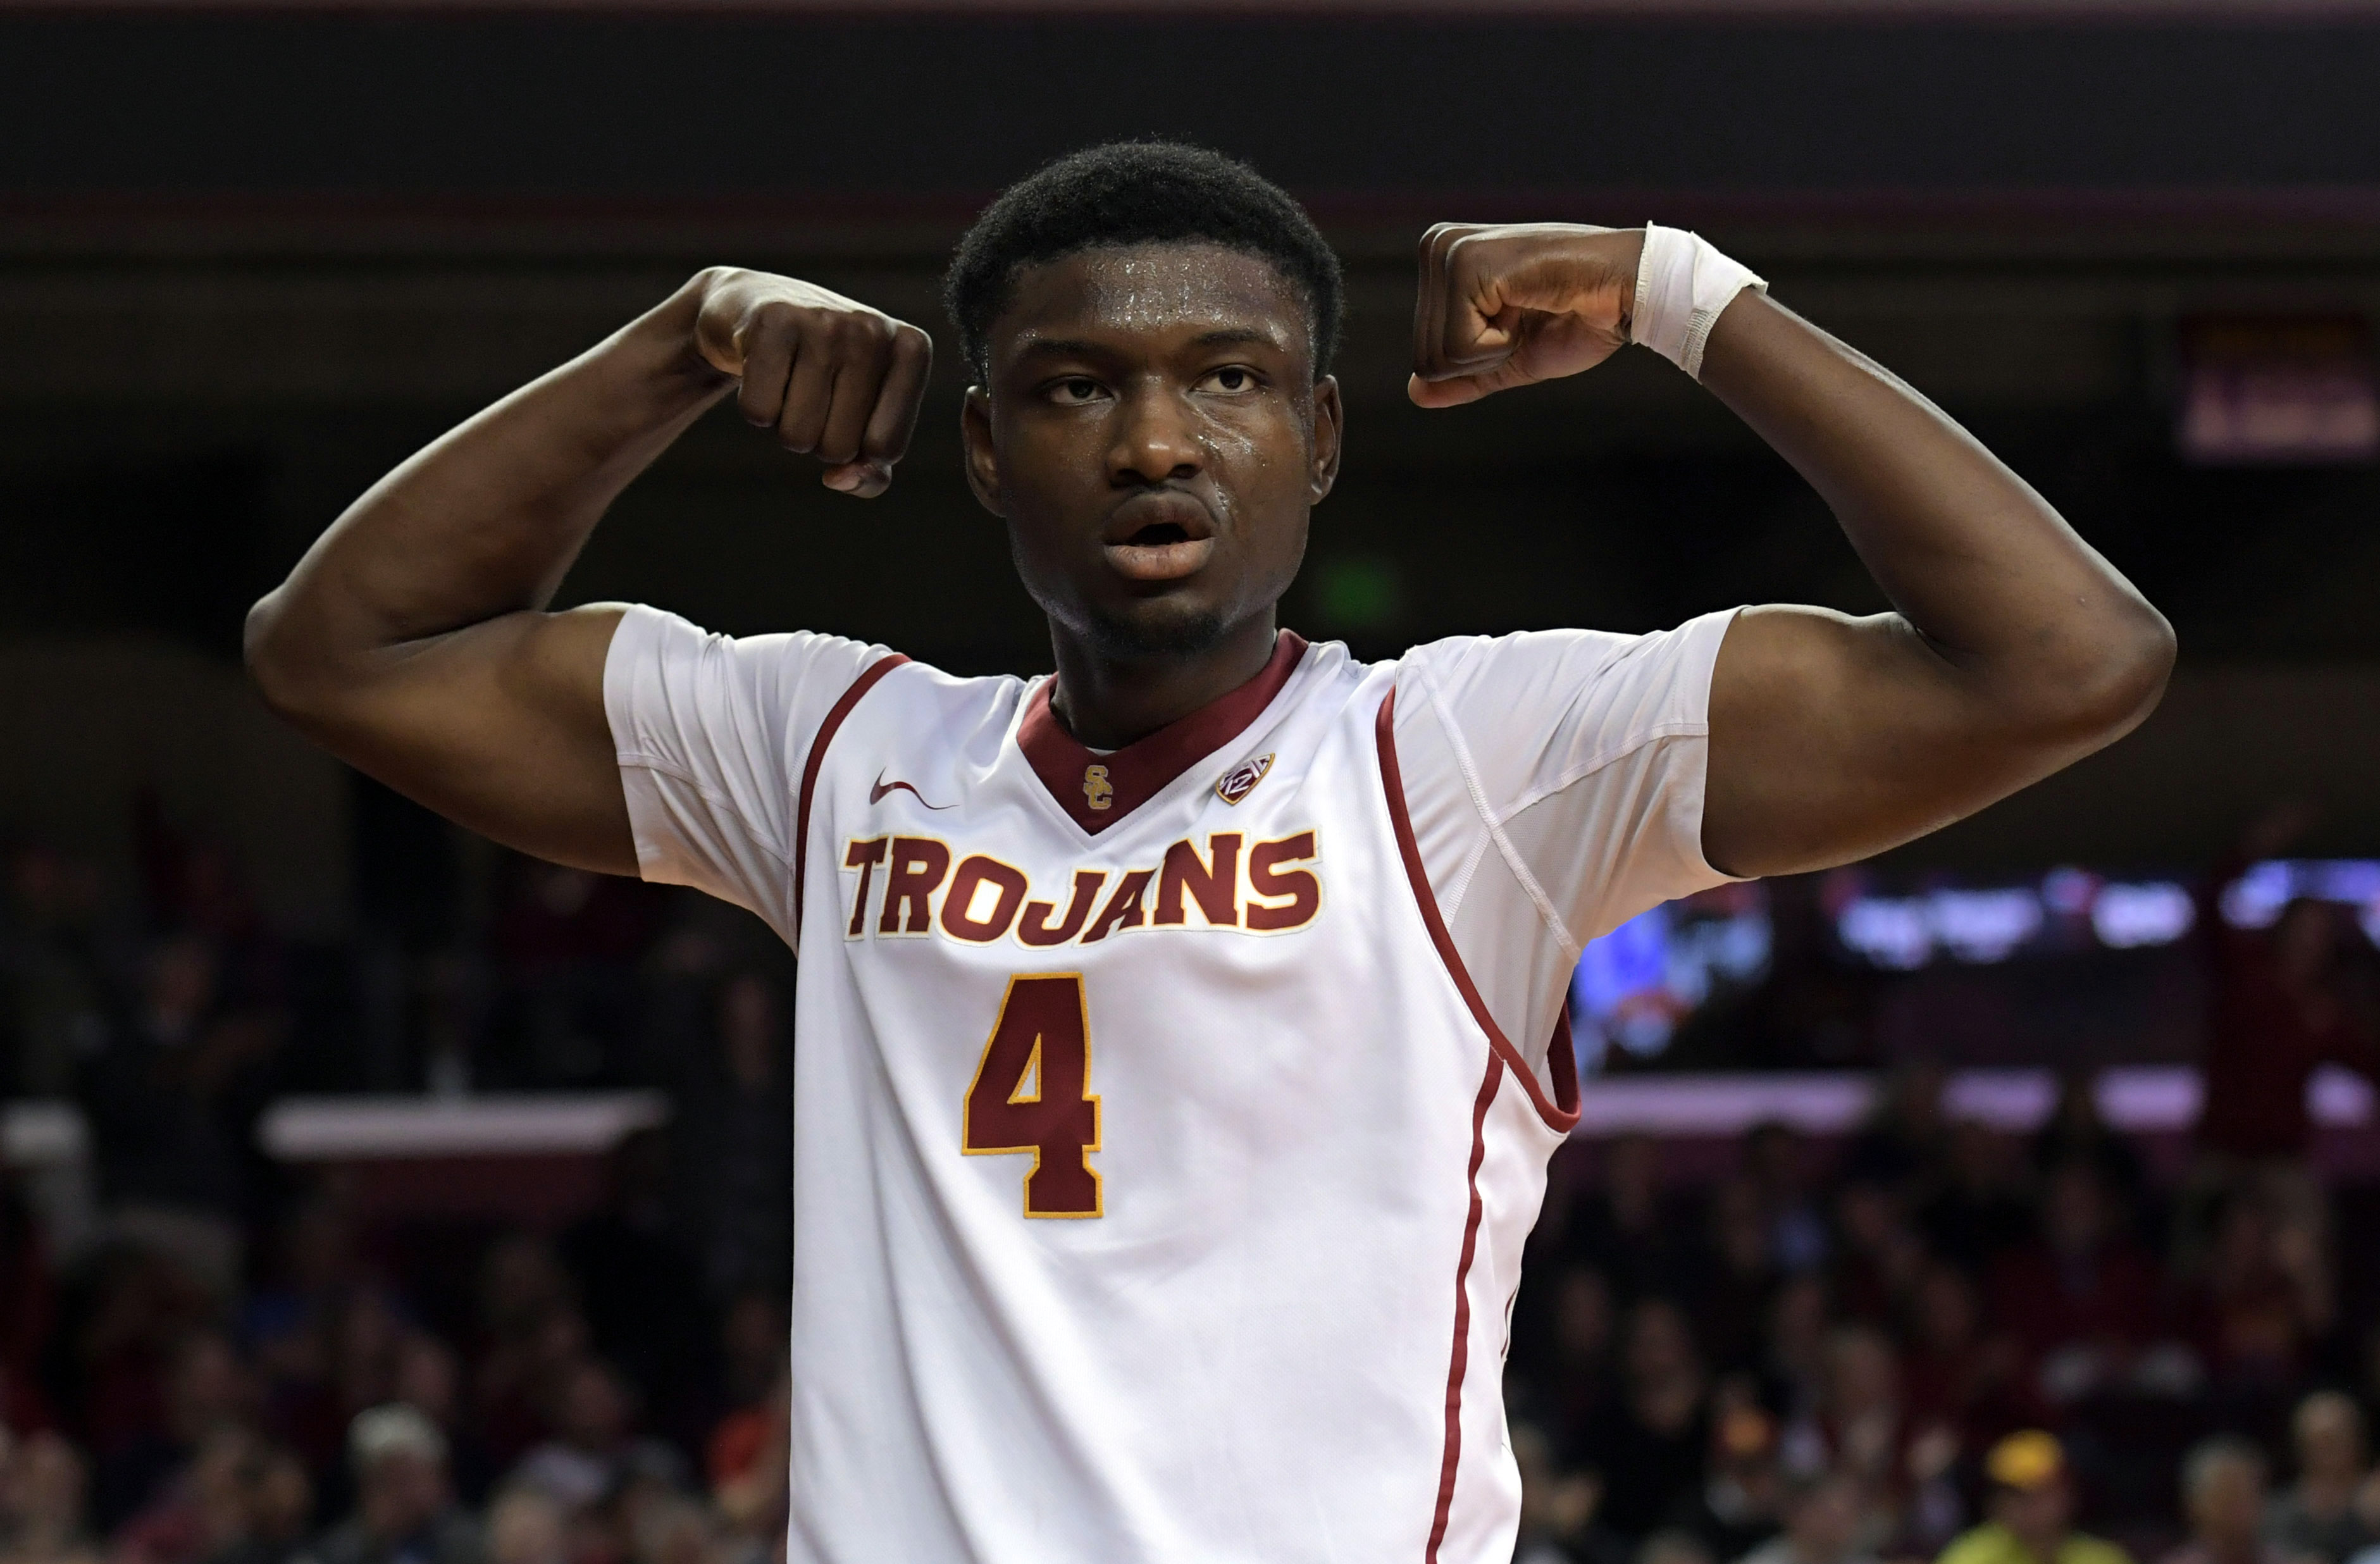 USC Basketball vs. UCLA: Trojans Win Fourth-Straight Over ...